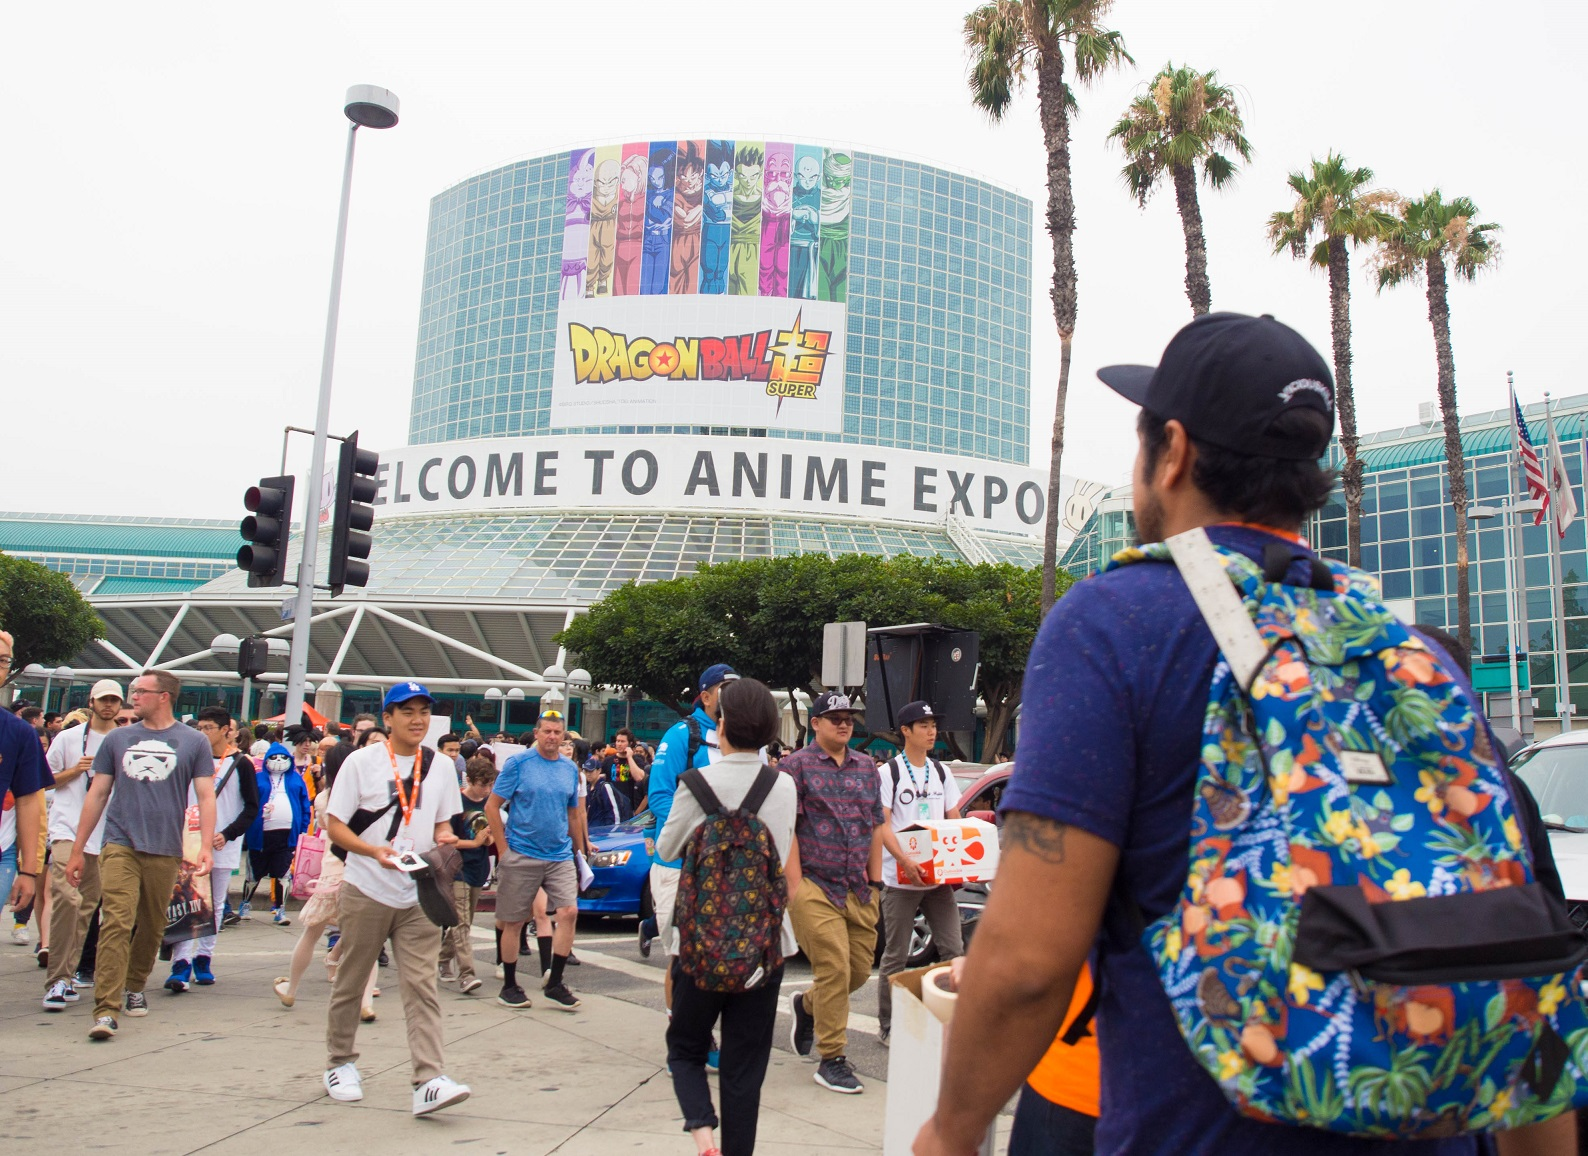 Looking Back At 2017 And Looking Forward To 2018 Anime Expo